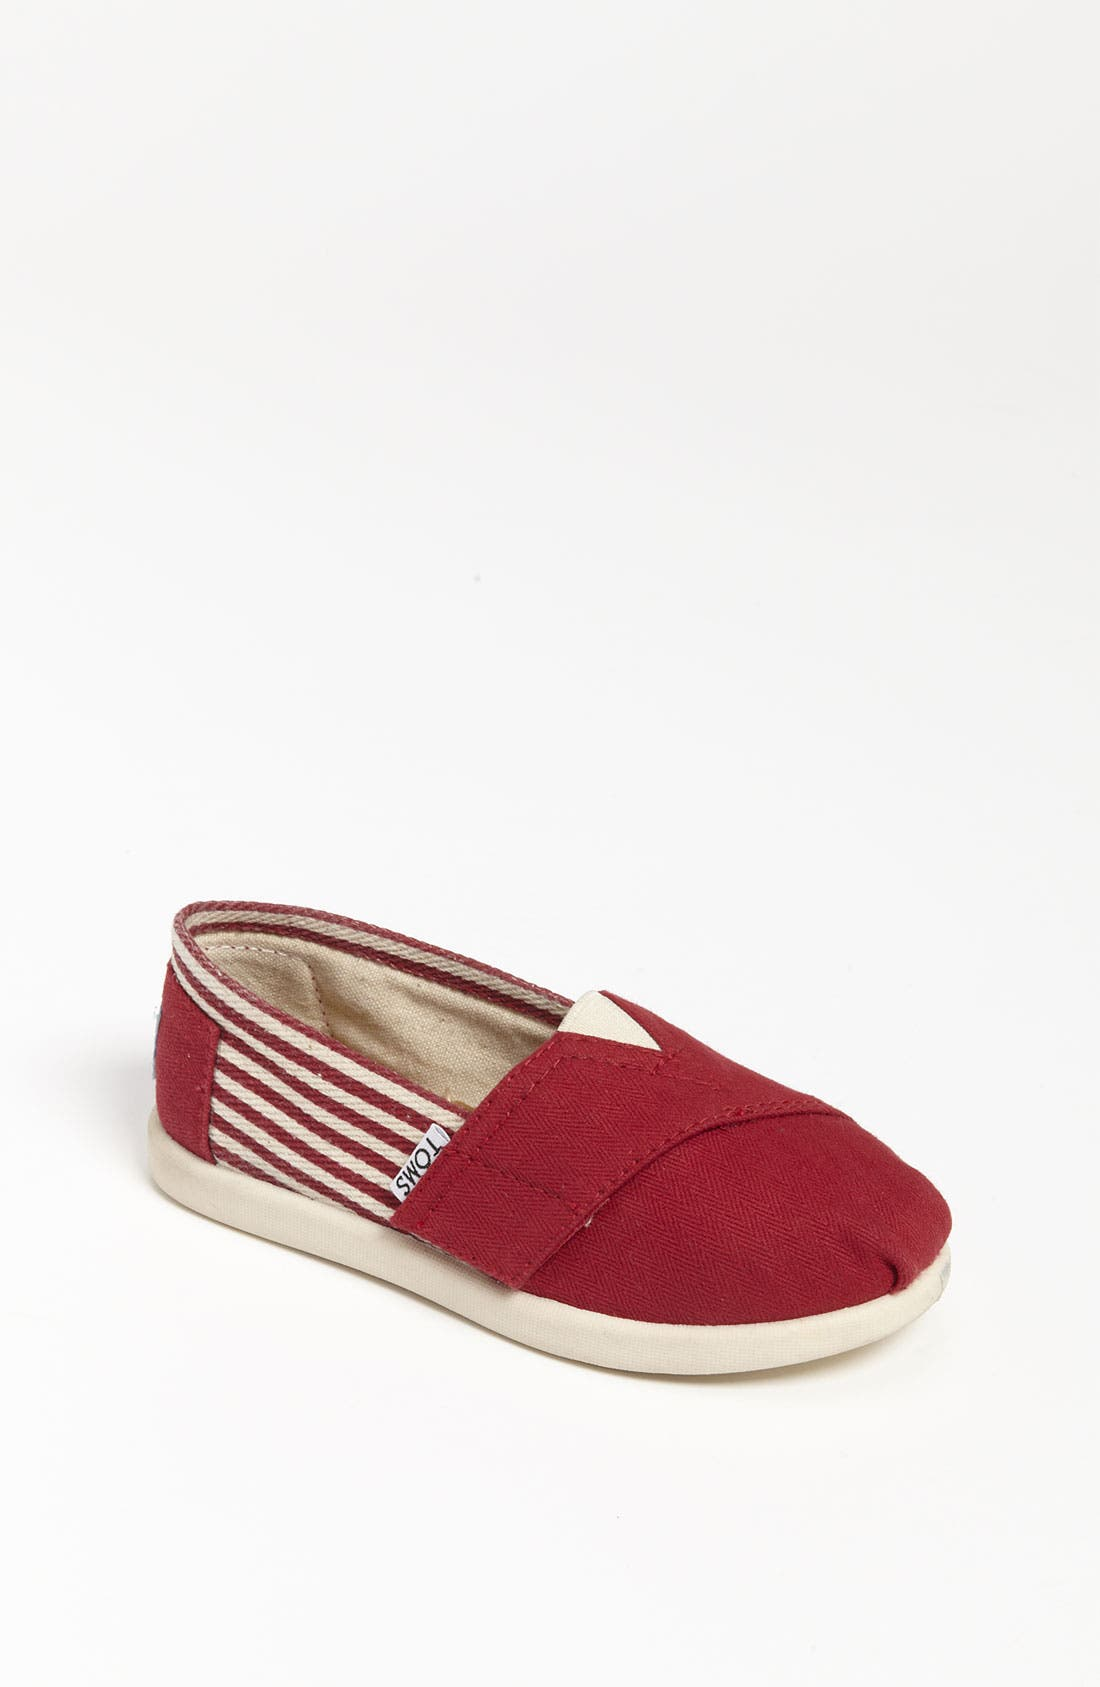 Alternate Image 1 Selected - TOMS 'Classic Tiny - University' Slip-On (Baby, Walker & Toddler) (Nordstrom Exclusive)